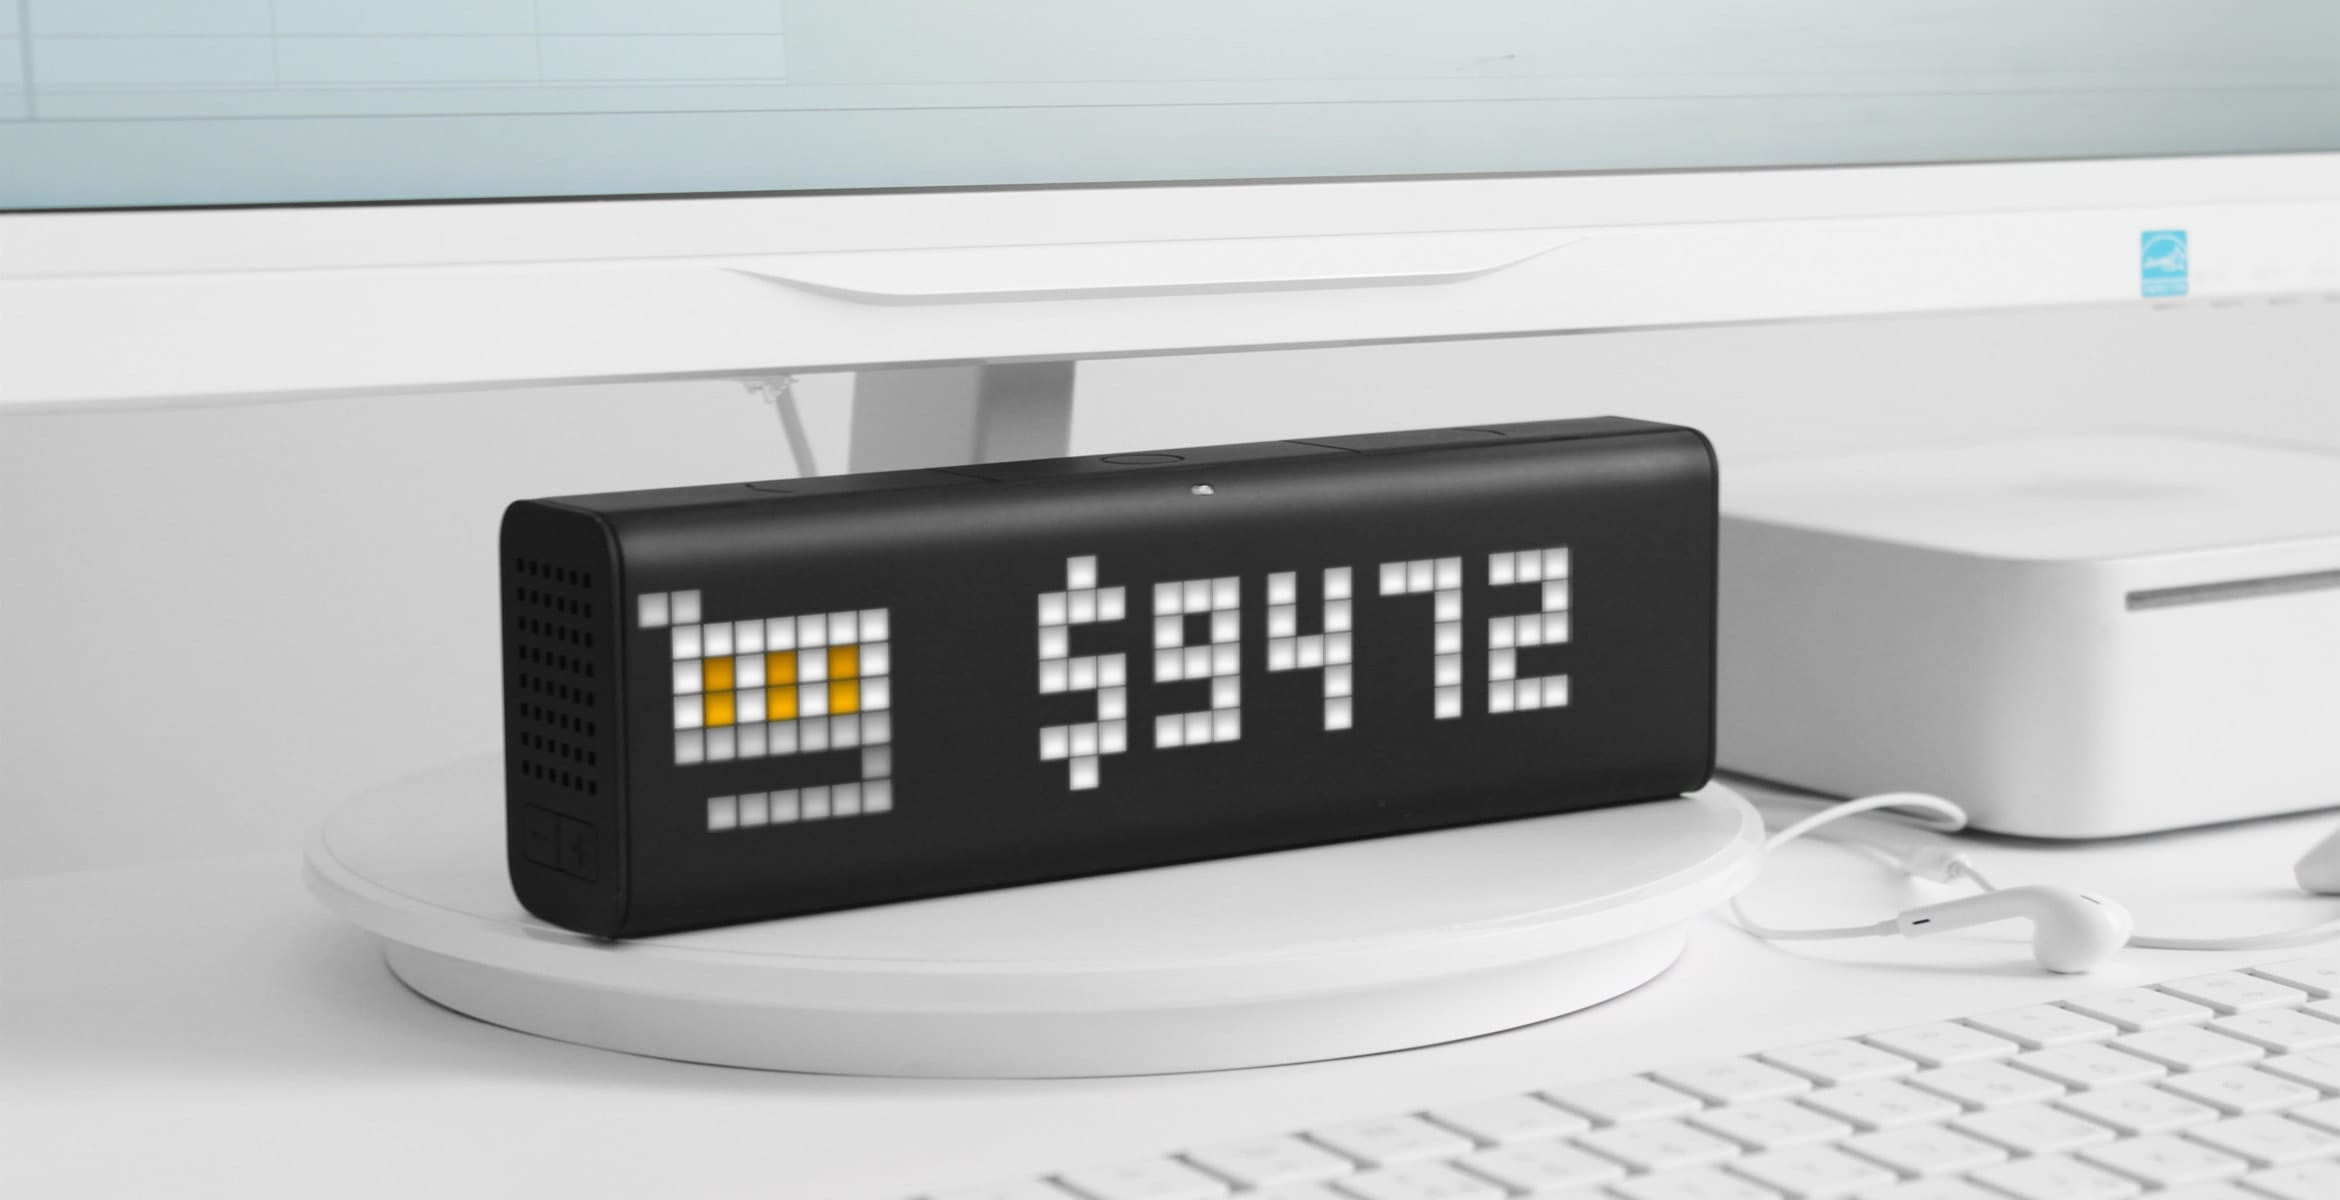 LaMetric Time smart clock complements the desk setup and displays revenue from the e-commerce